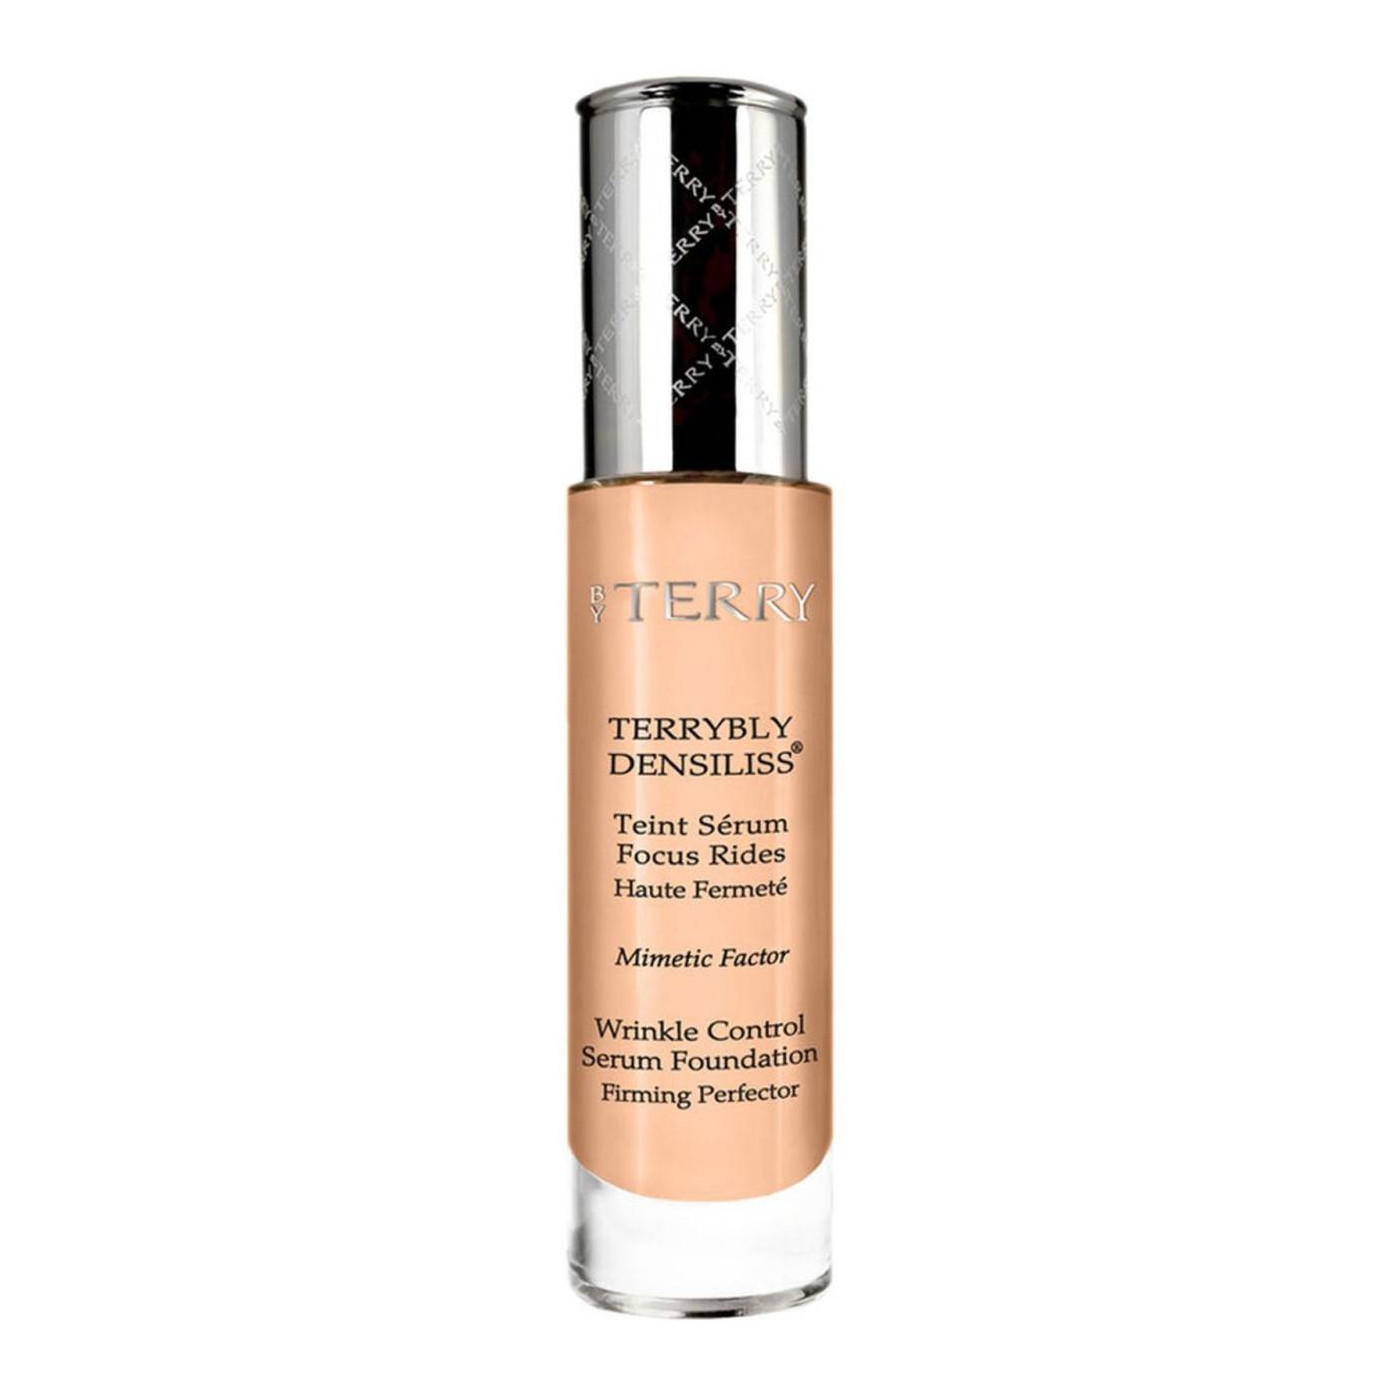 By Terry Terrybly Densiliss Anti-Wrinkle Serum Foundation Honey Glow